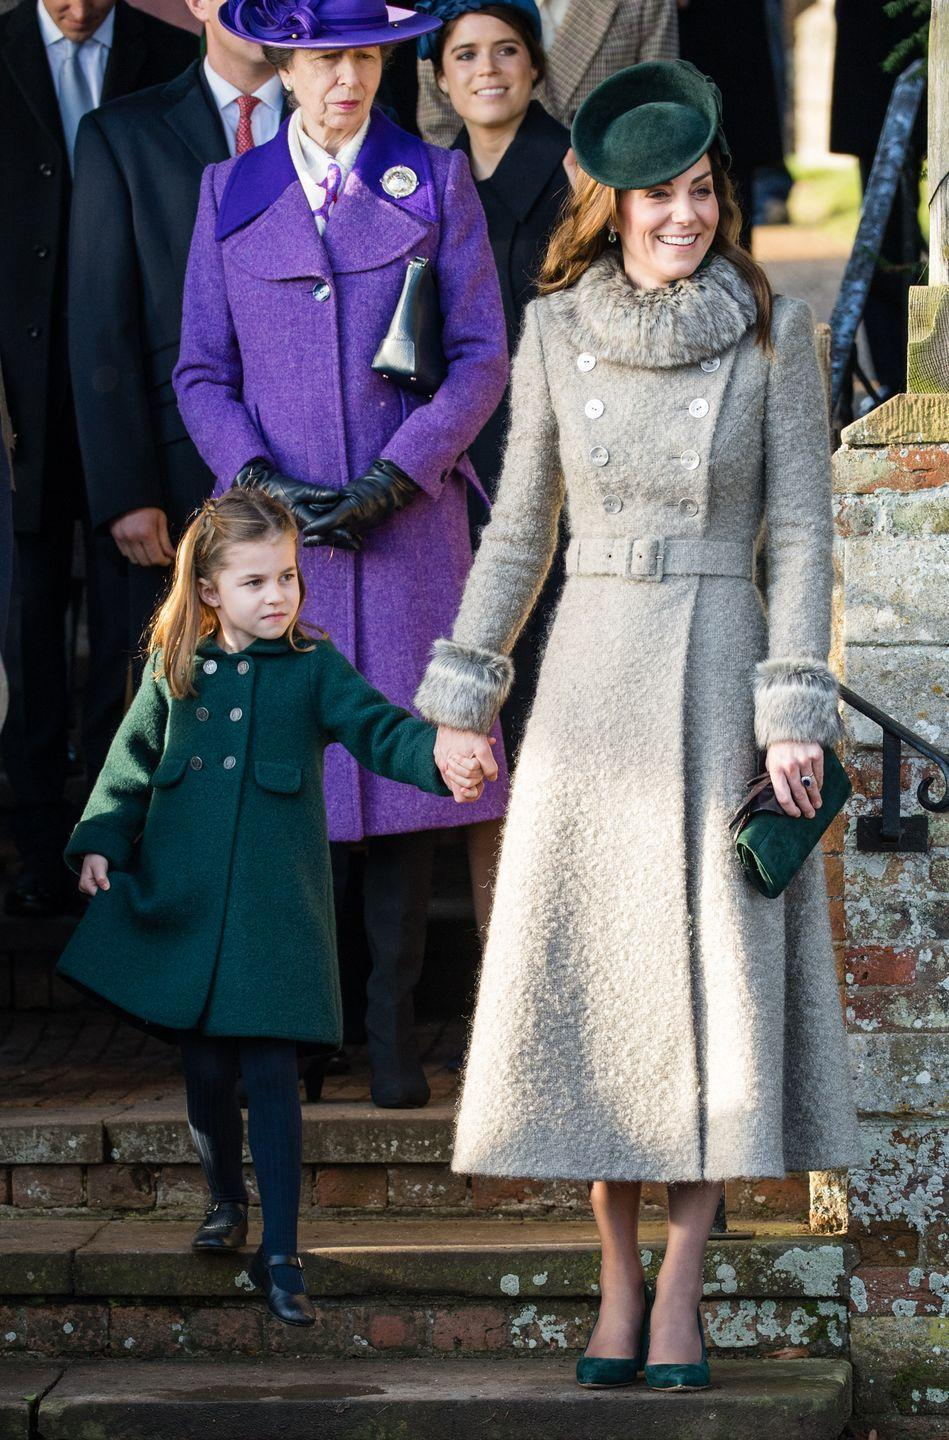 <p>To attend Christmas Day services at Sandringham, Kate paired a chic gray coat with dark green accessories—the latter of which went well with the coat her daughter, Princess Charlotte, was wearing.</p>